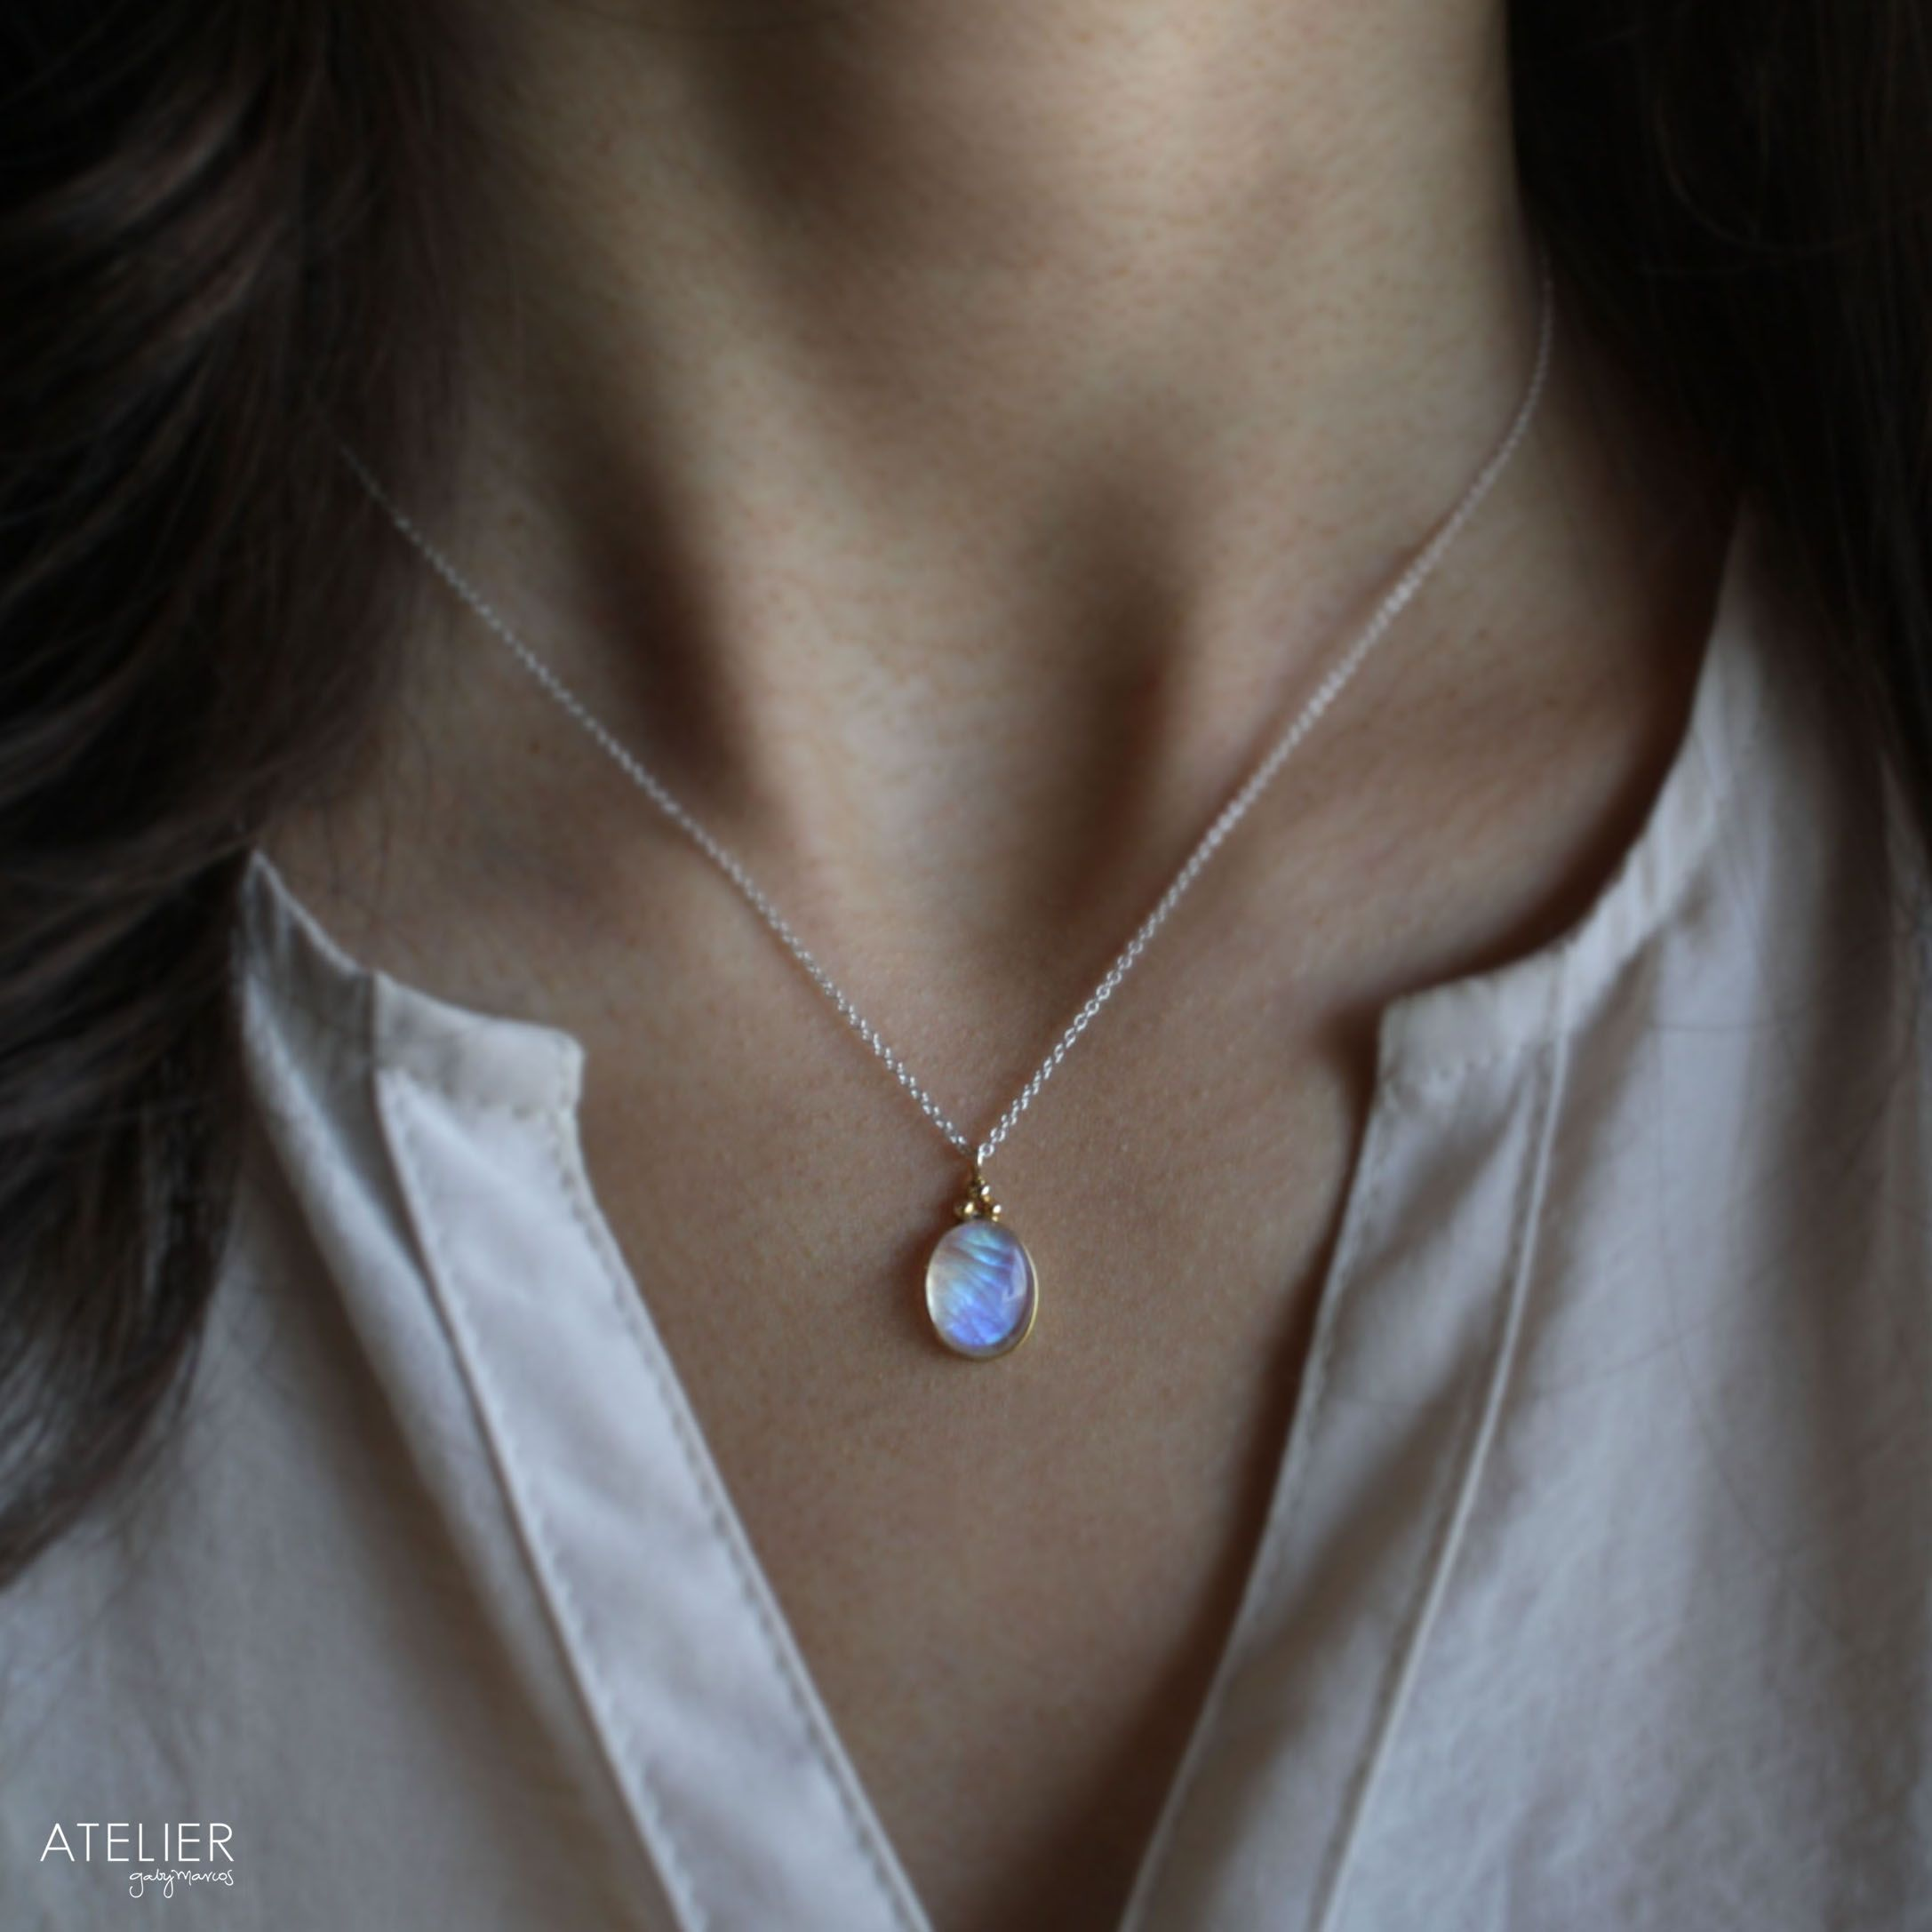 Flashy Moonstone Necklace set in Solid 14kt Gold & Sterling Silver Chain by ATELIER Gaby Marcos